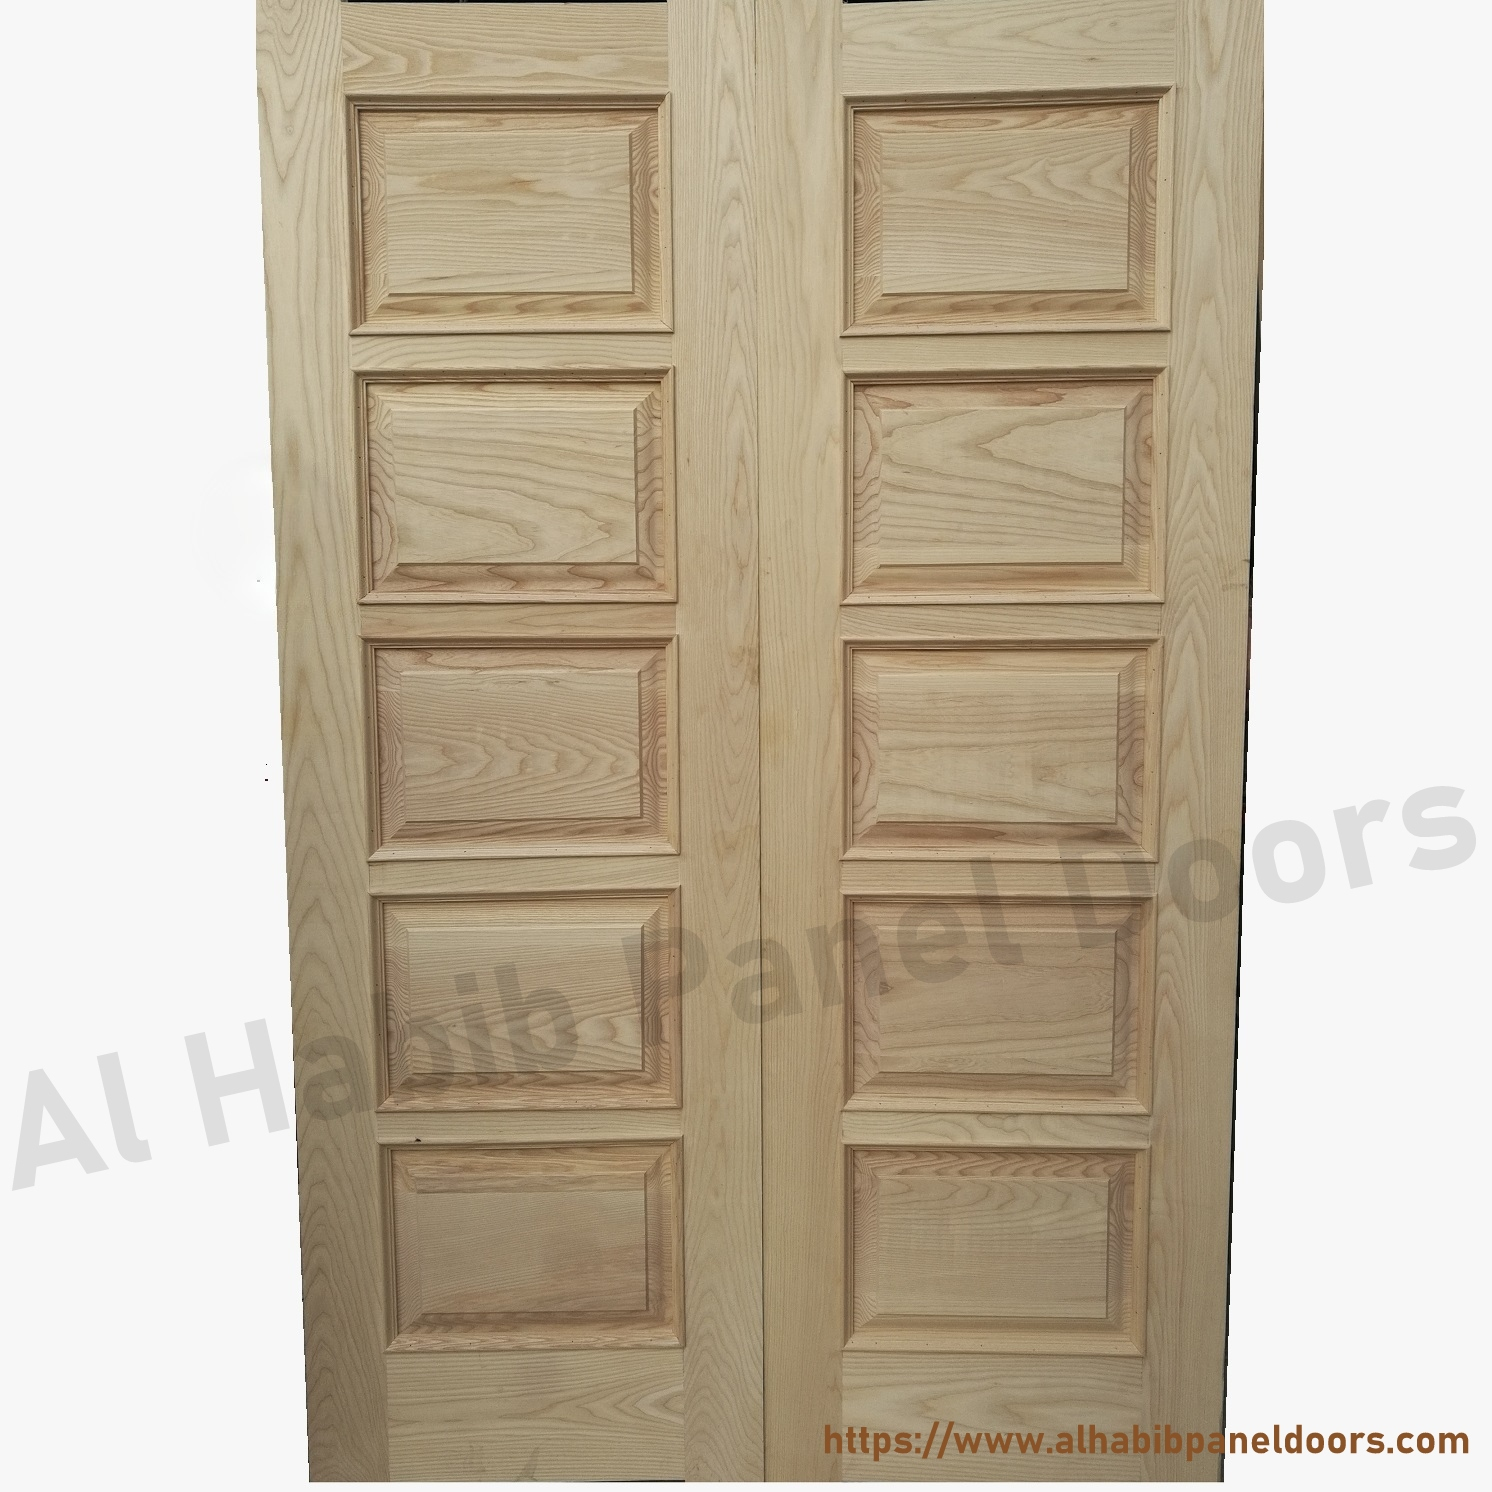 Doors Design: Al Habib Panel Doors